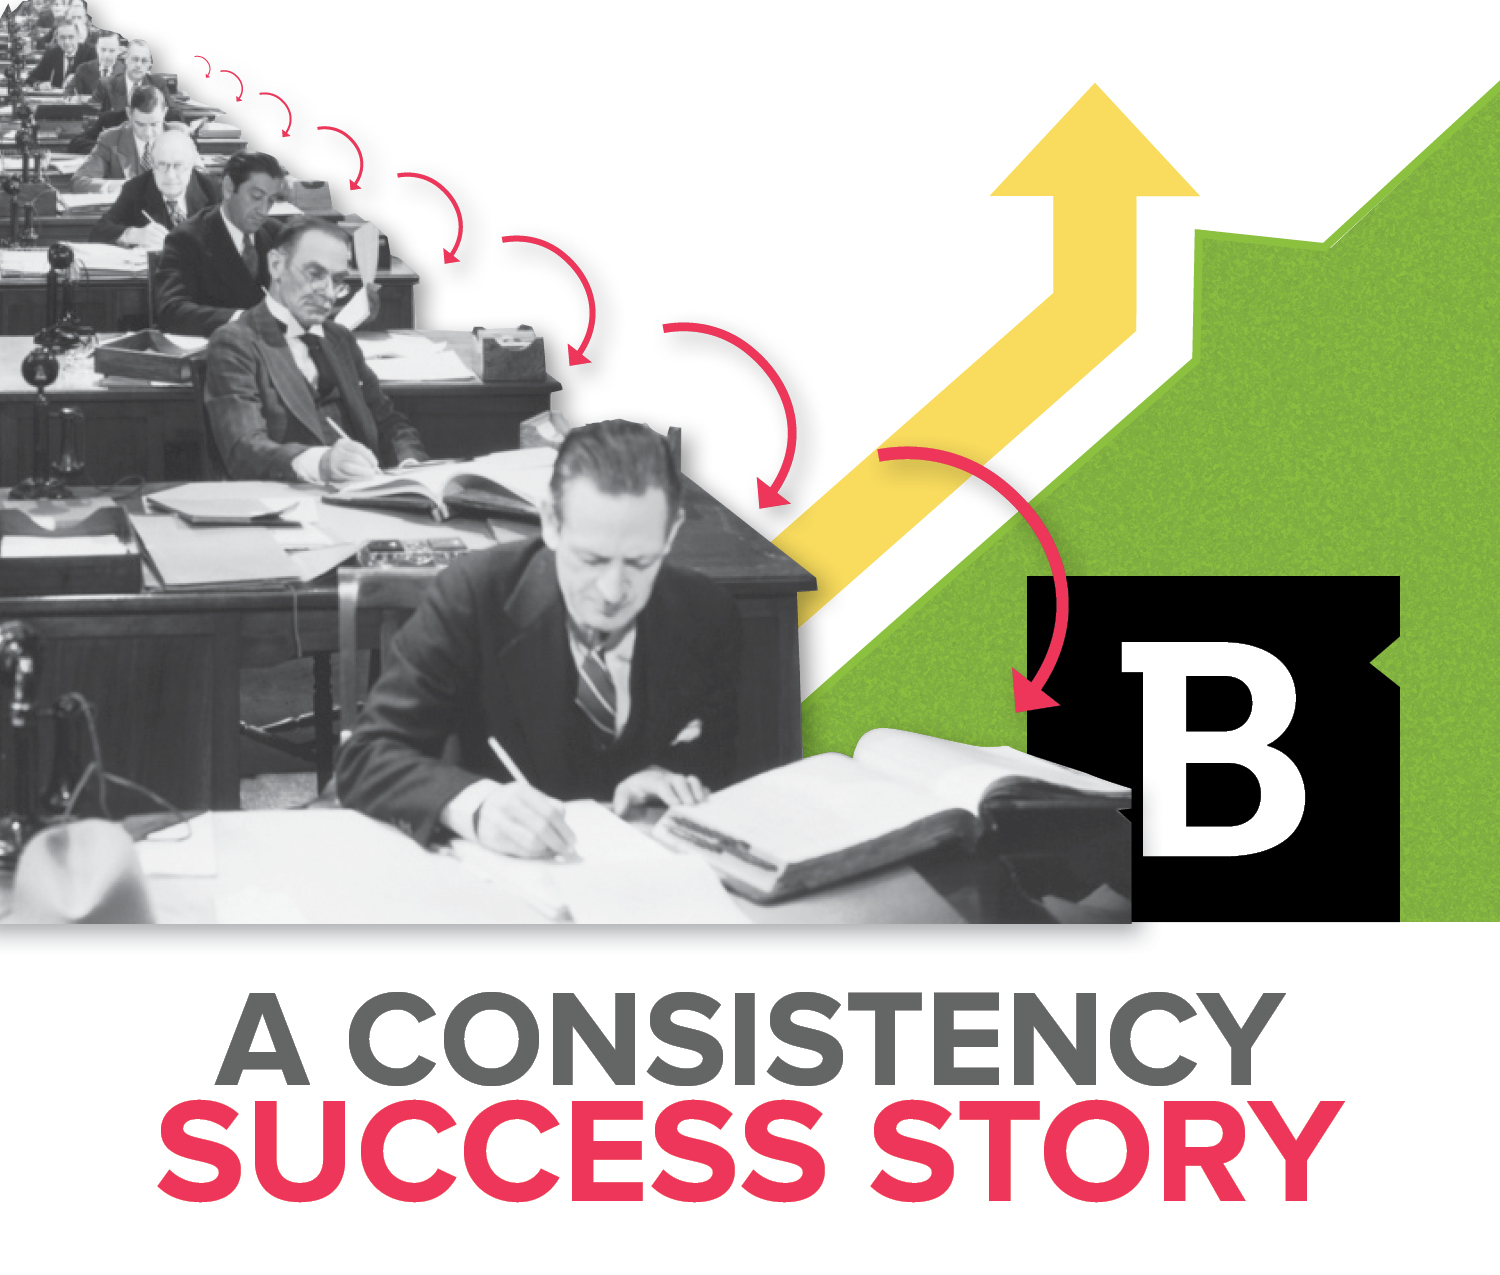 Brafton success story - Blogging consistency drives success